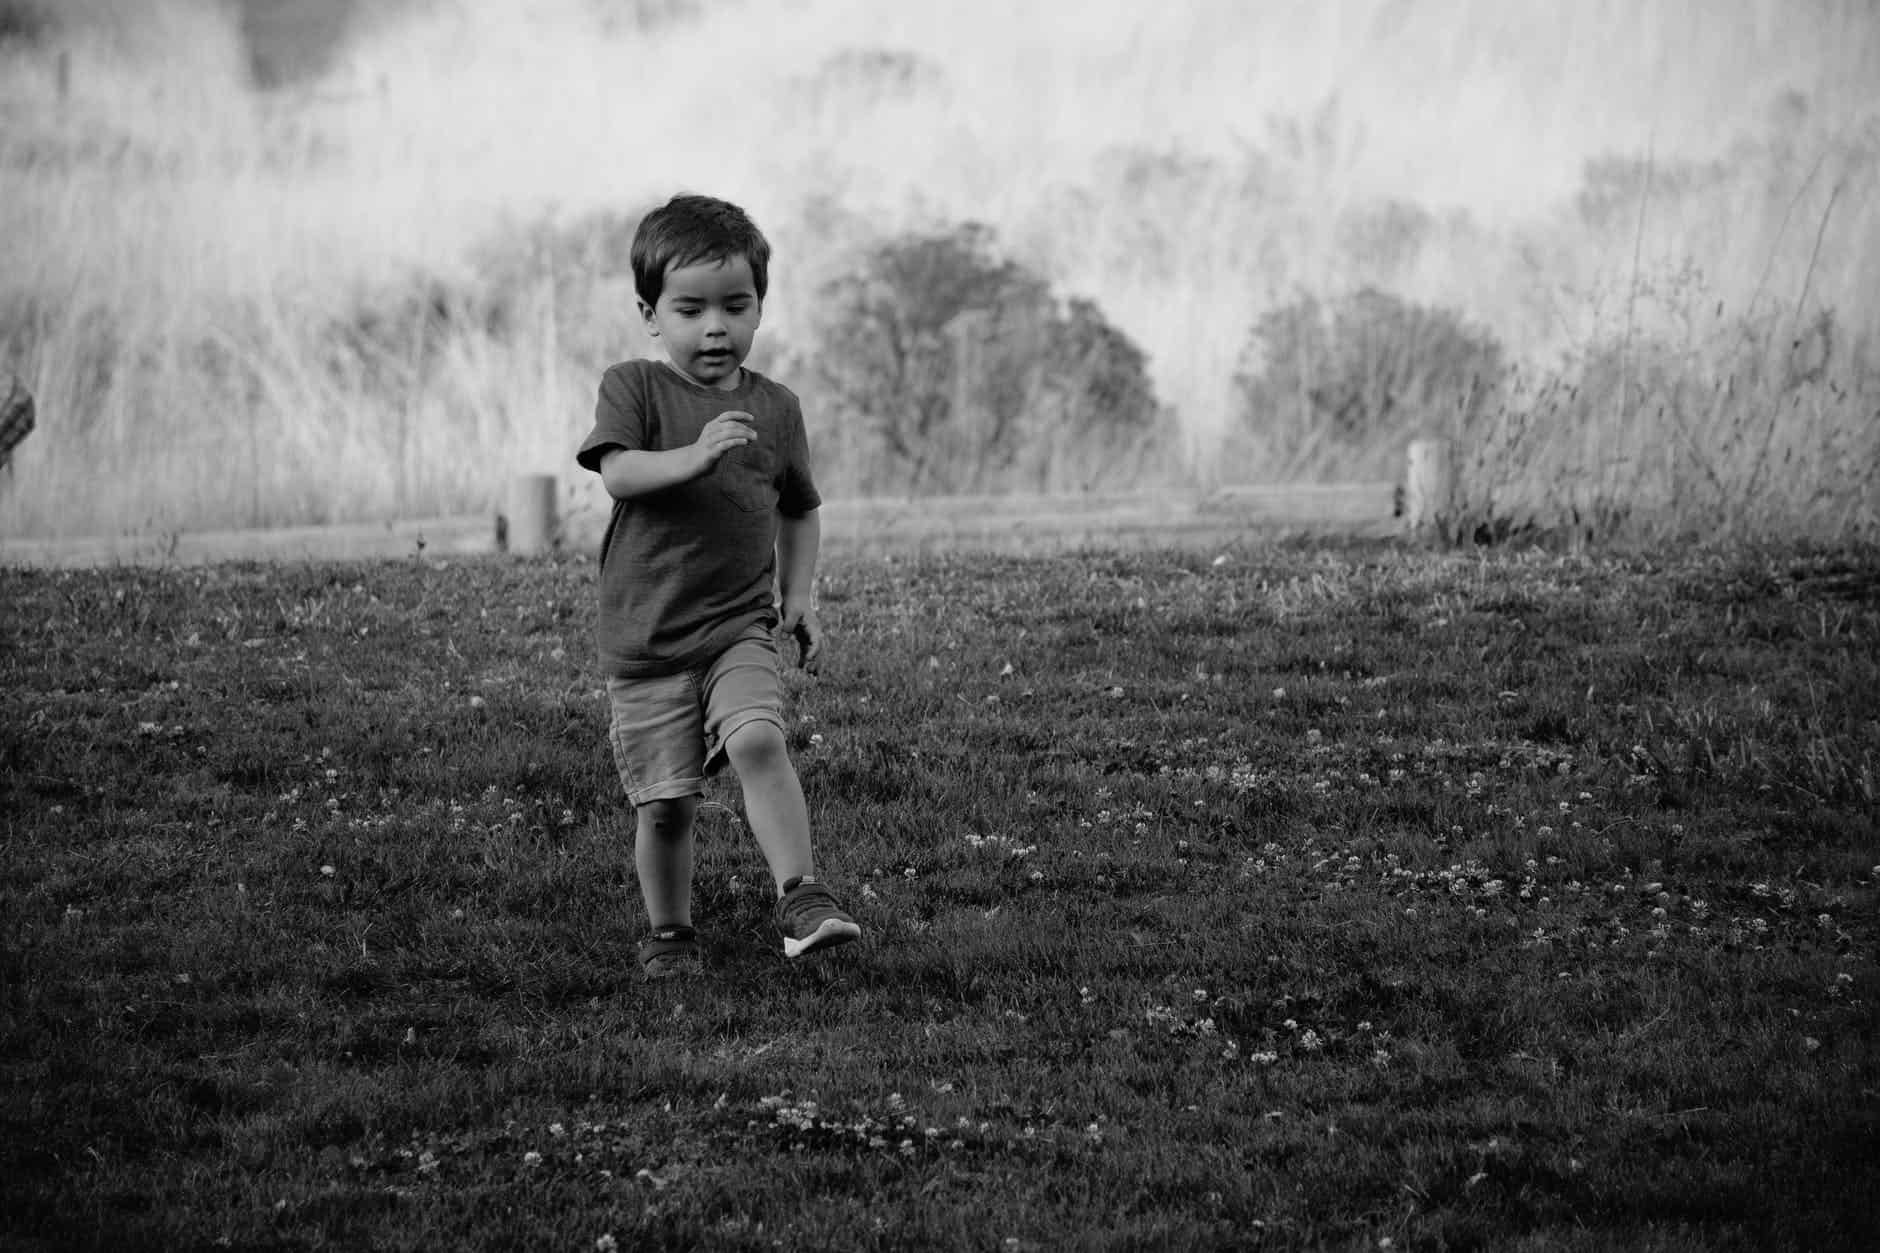 grayscale photography of kid walking on grass The Healing Powers of Micro-Shifting